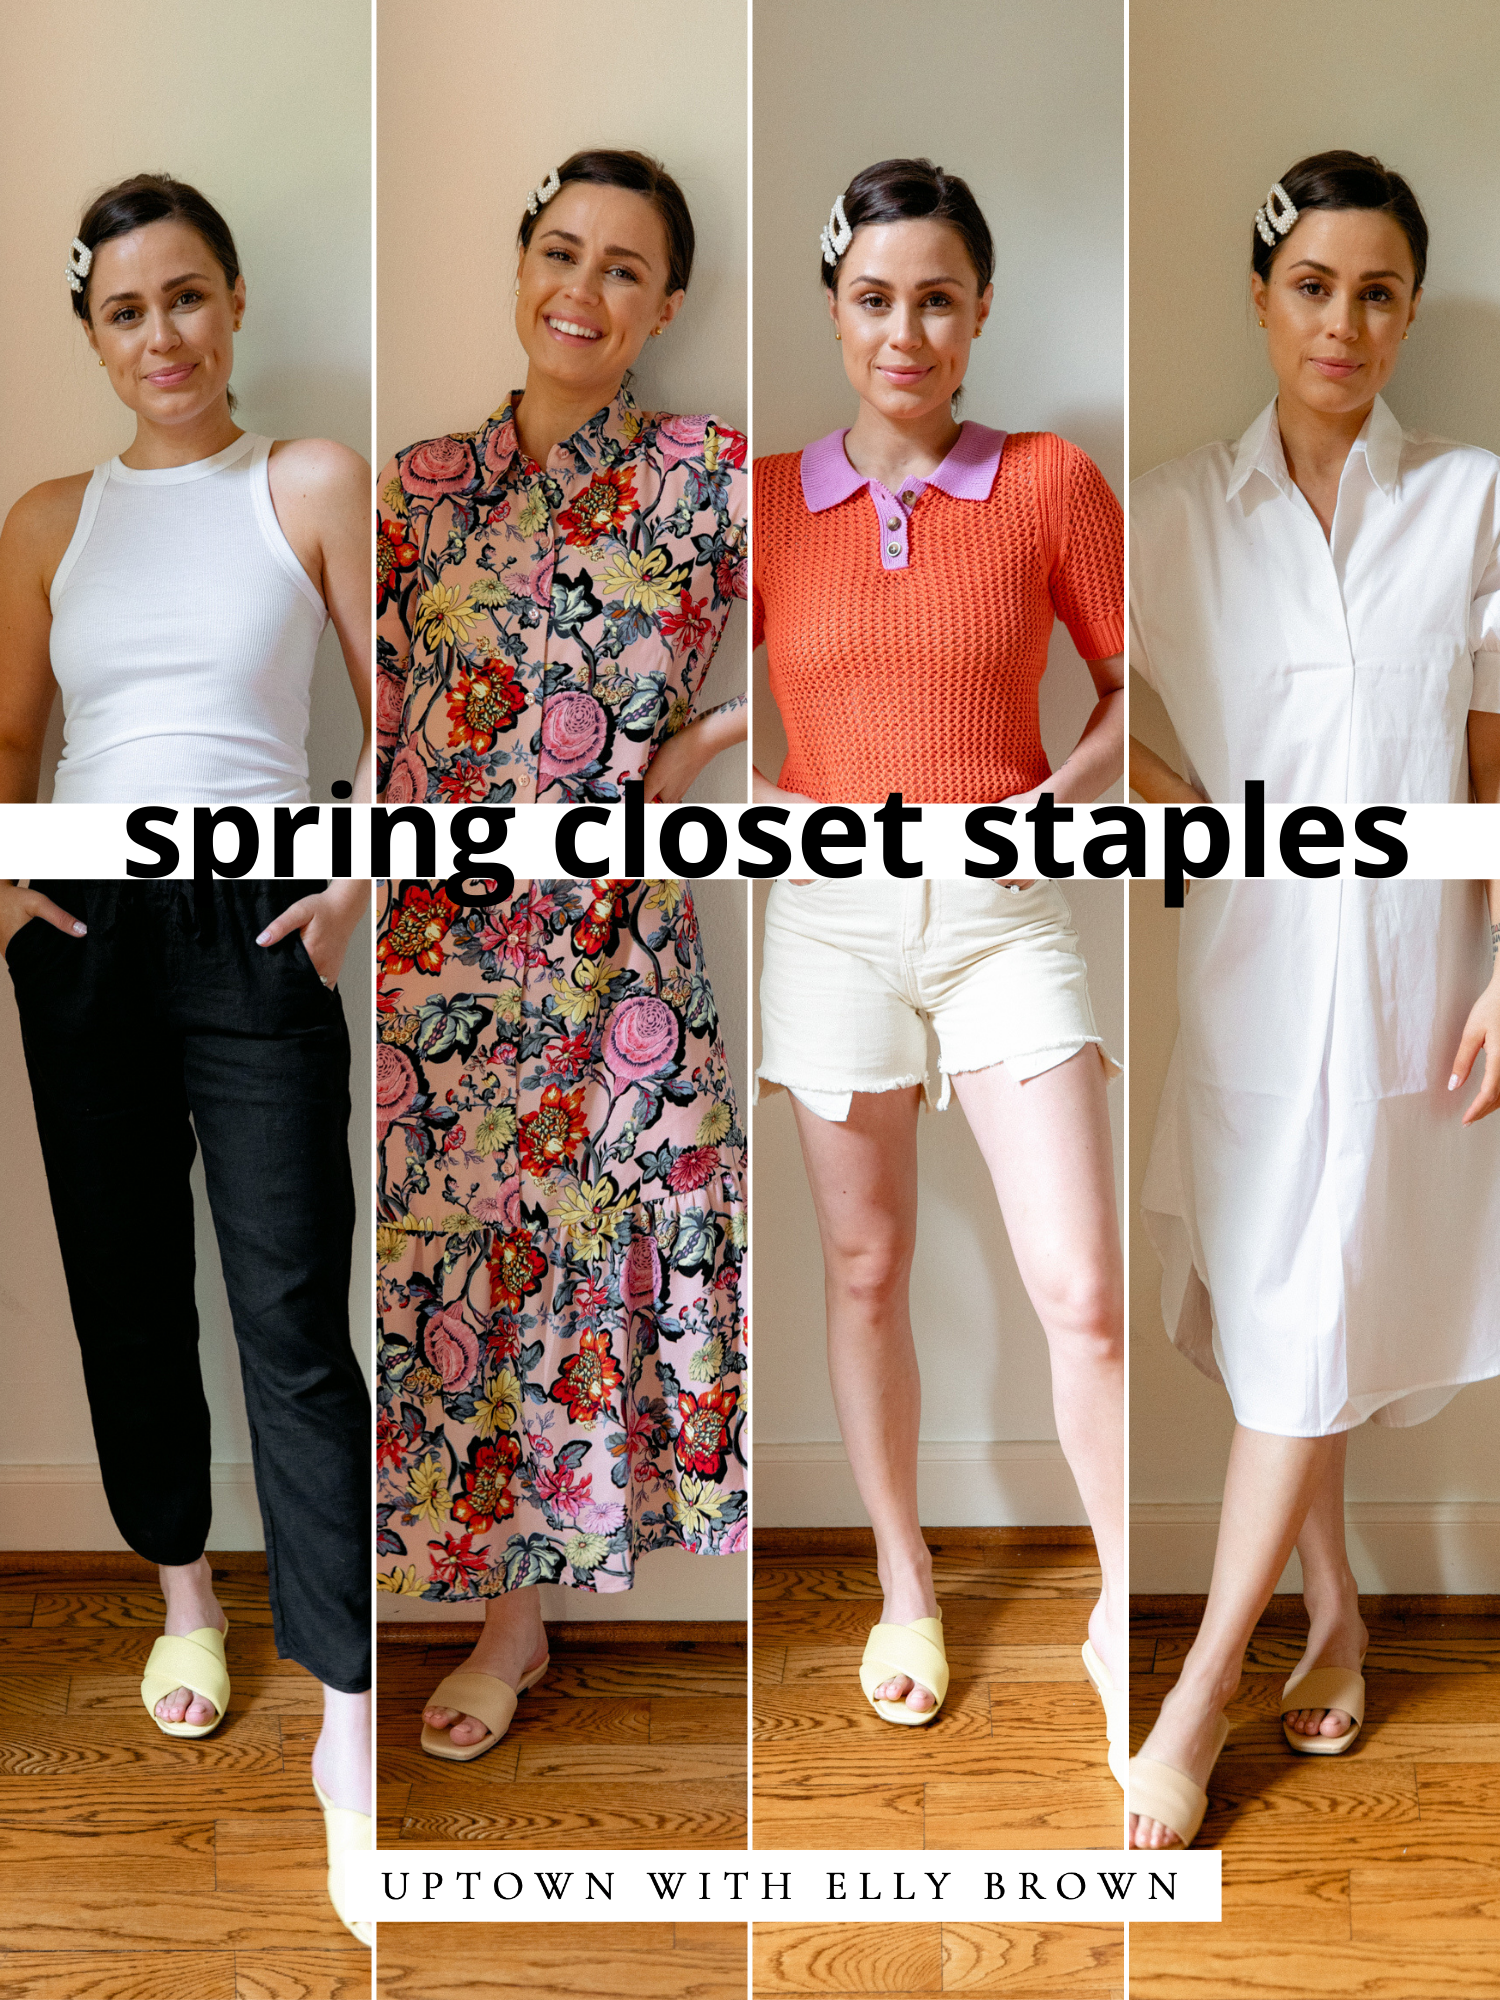 Ever ask yourself how do I build my closet? Elly Brown shares Spring Wardrobe Essentials + tips and tricks on how to get the closet you LOVE.